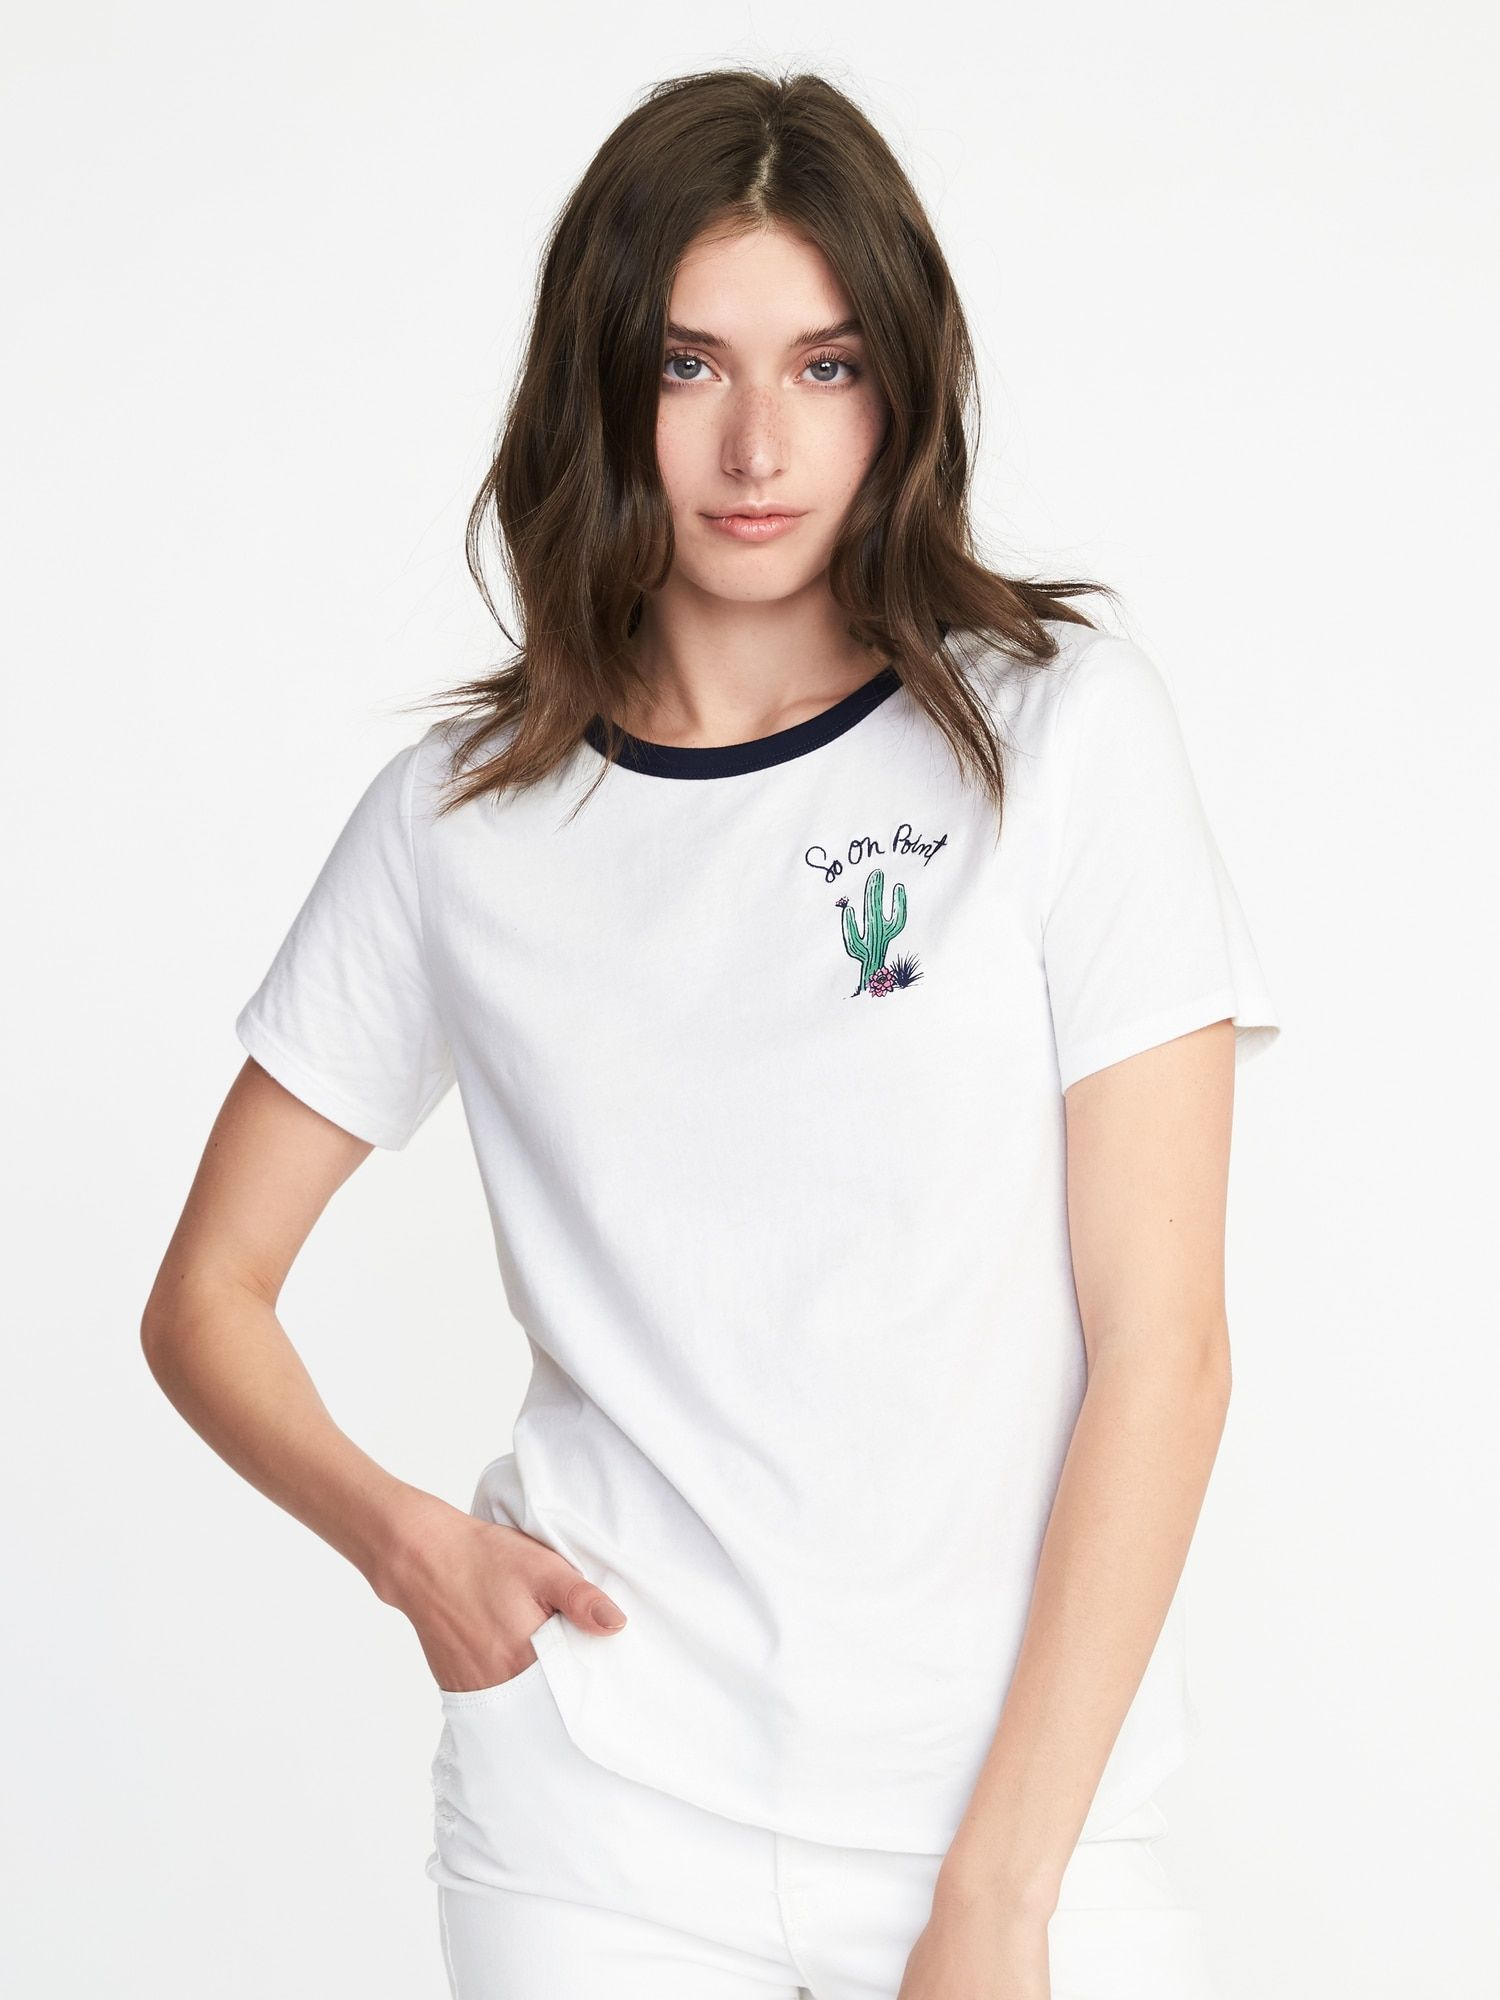 de96b4901 So on point cactus graphic tee - old Navy | Fashion Find Favorites ...